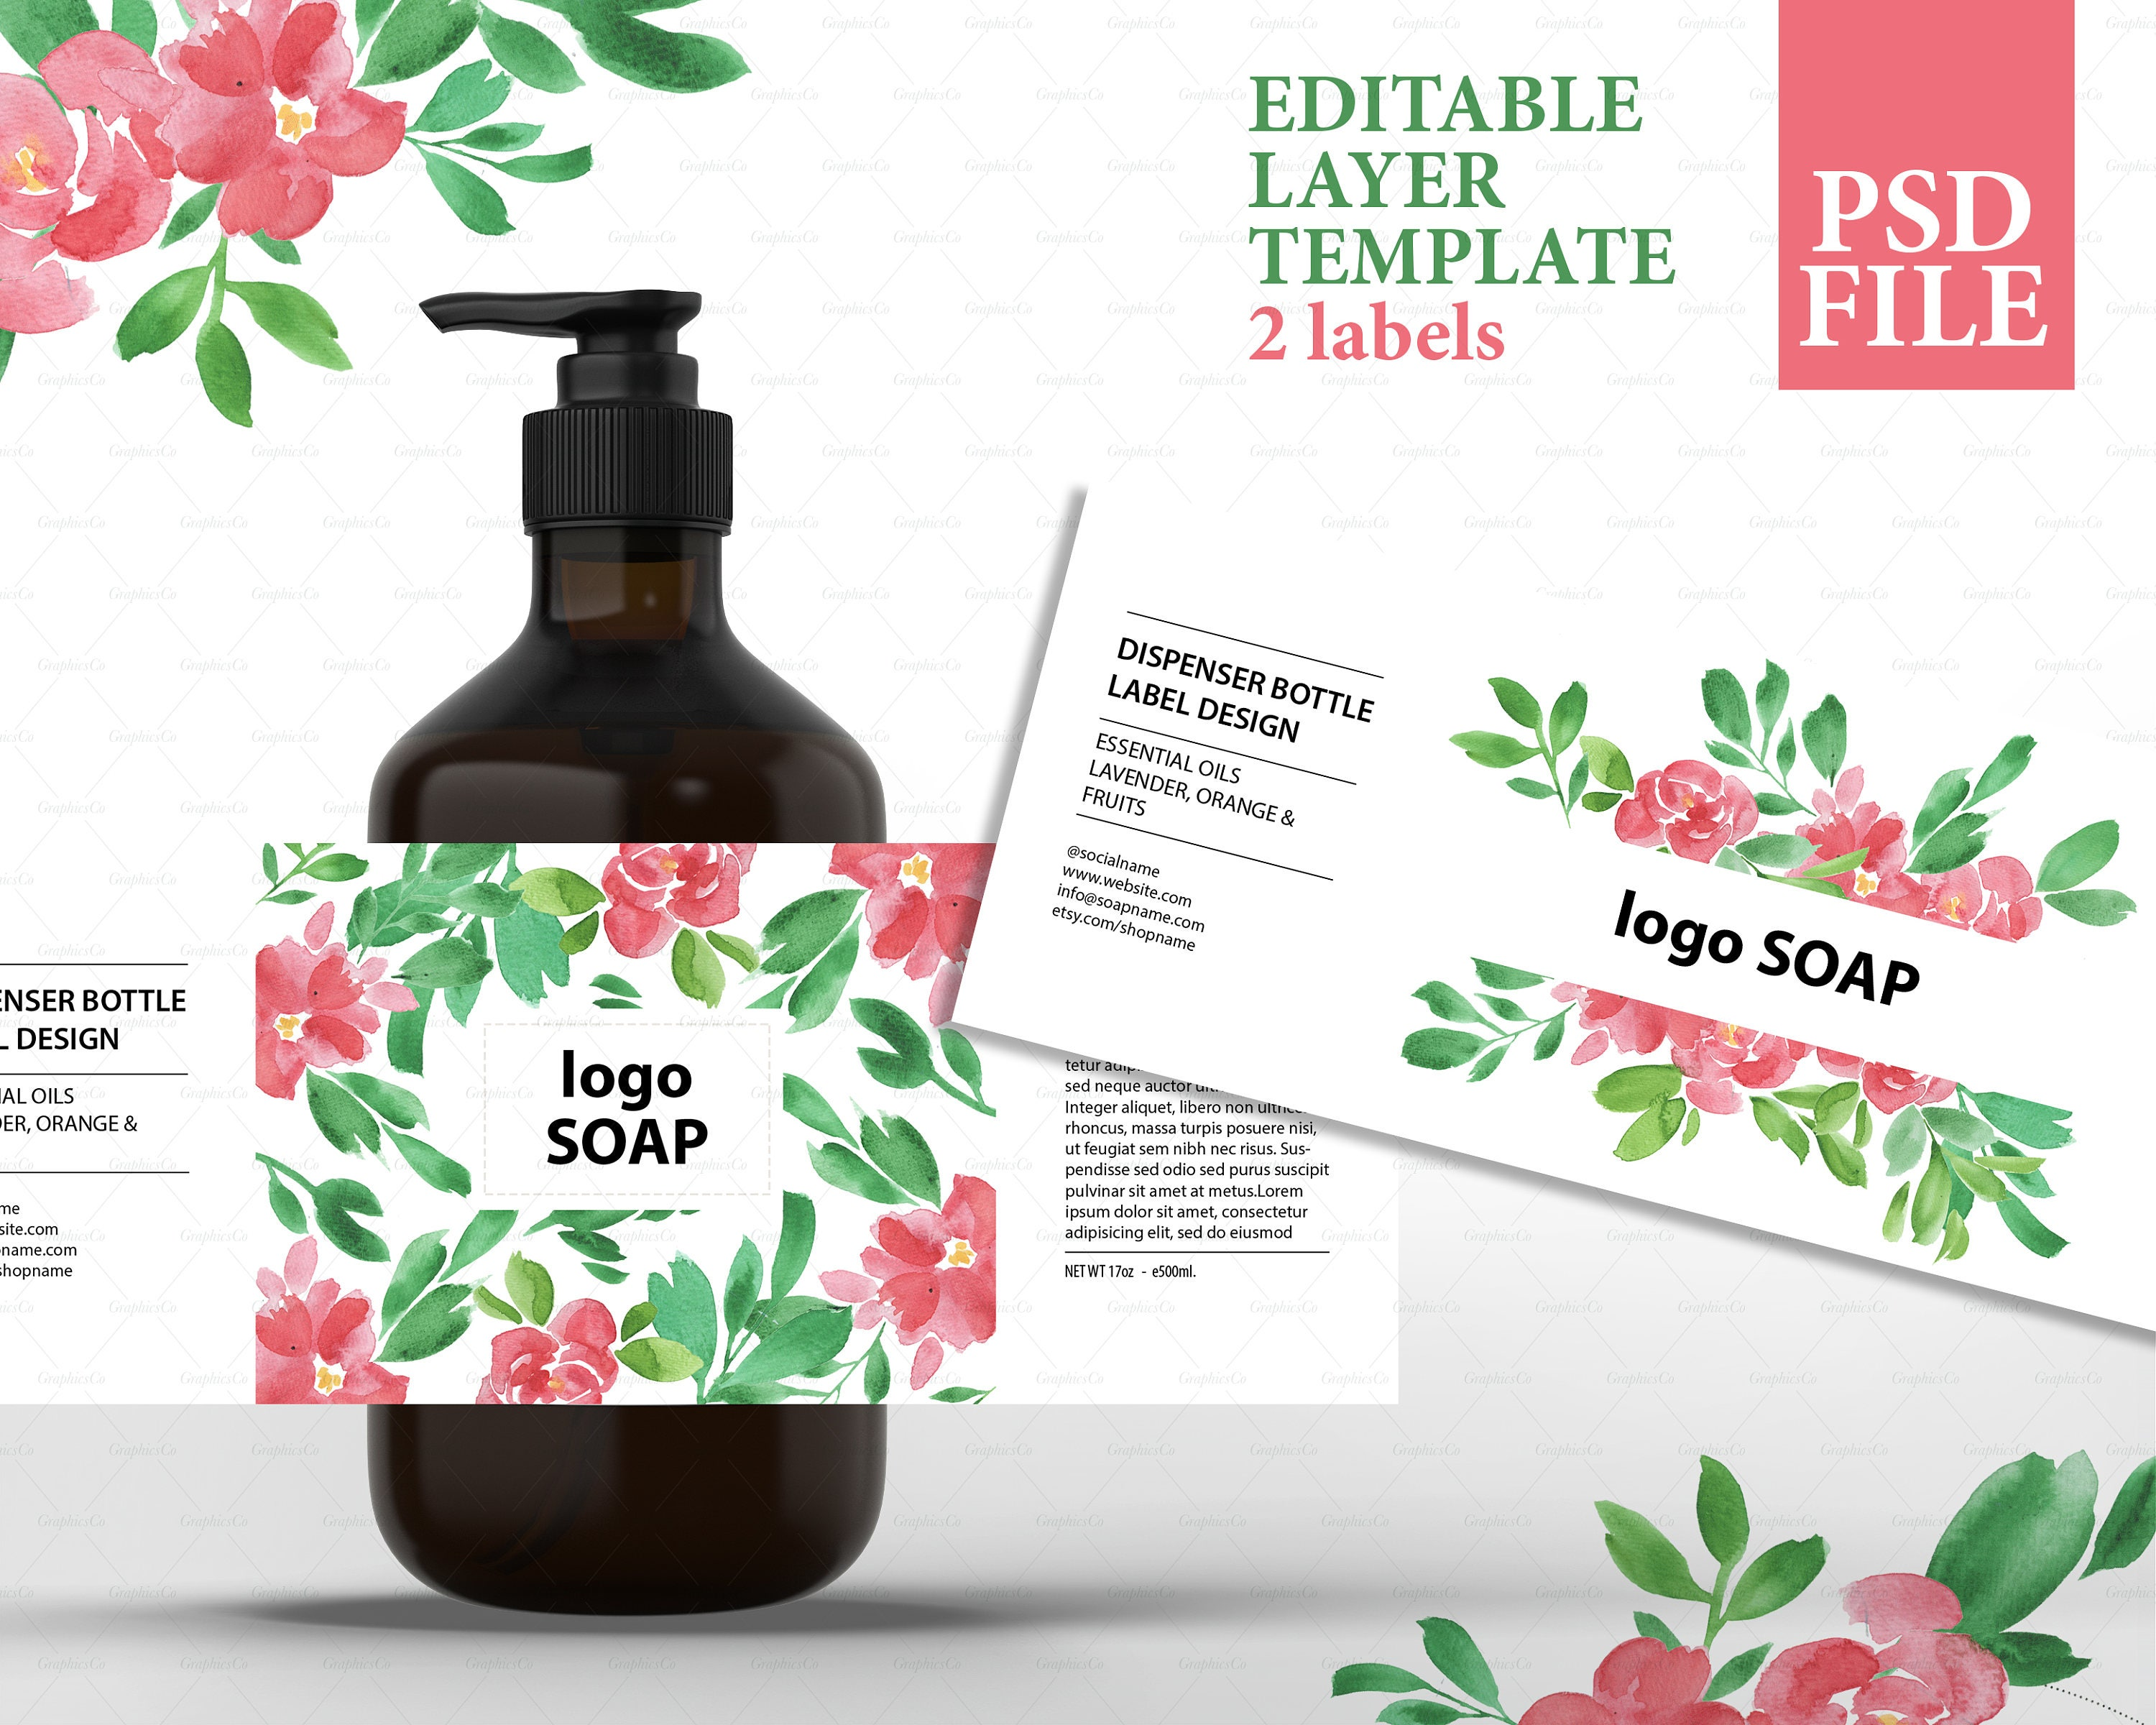 Soap label design cosmetic label template product packaging